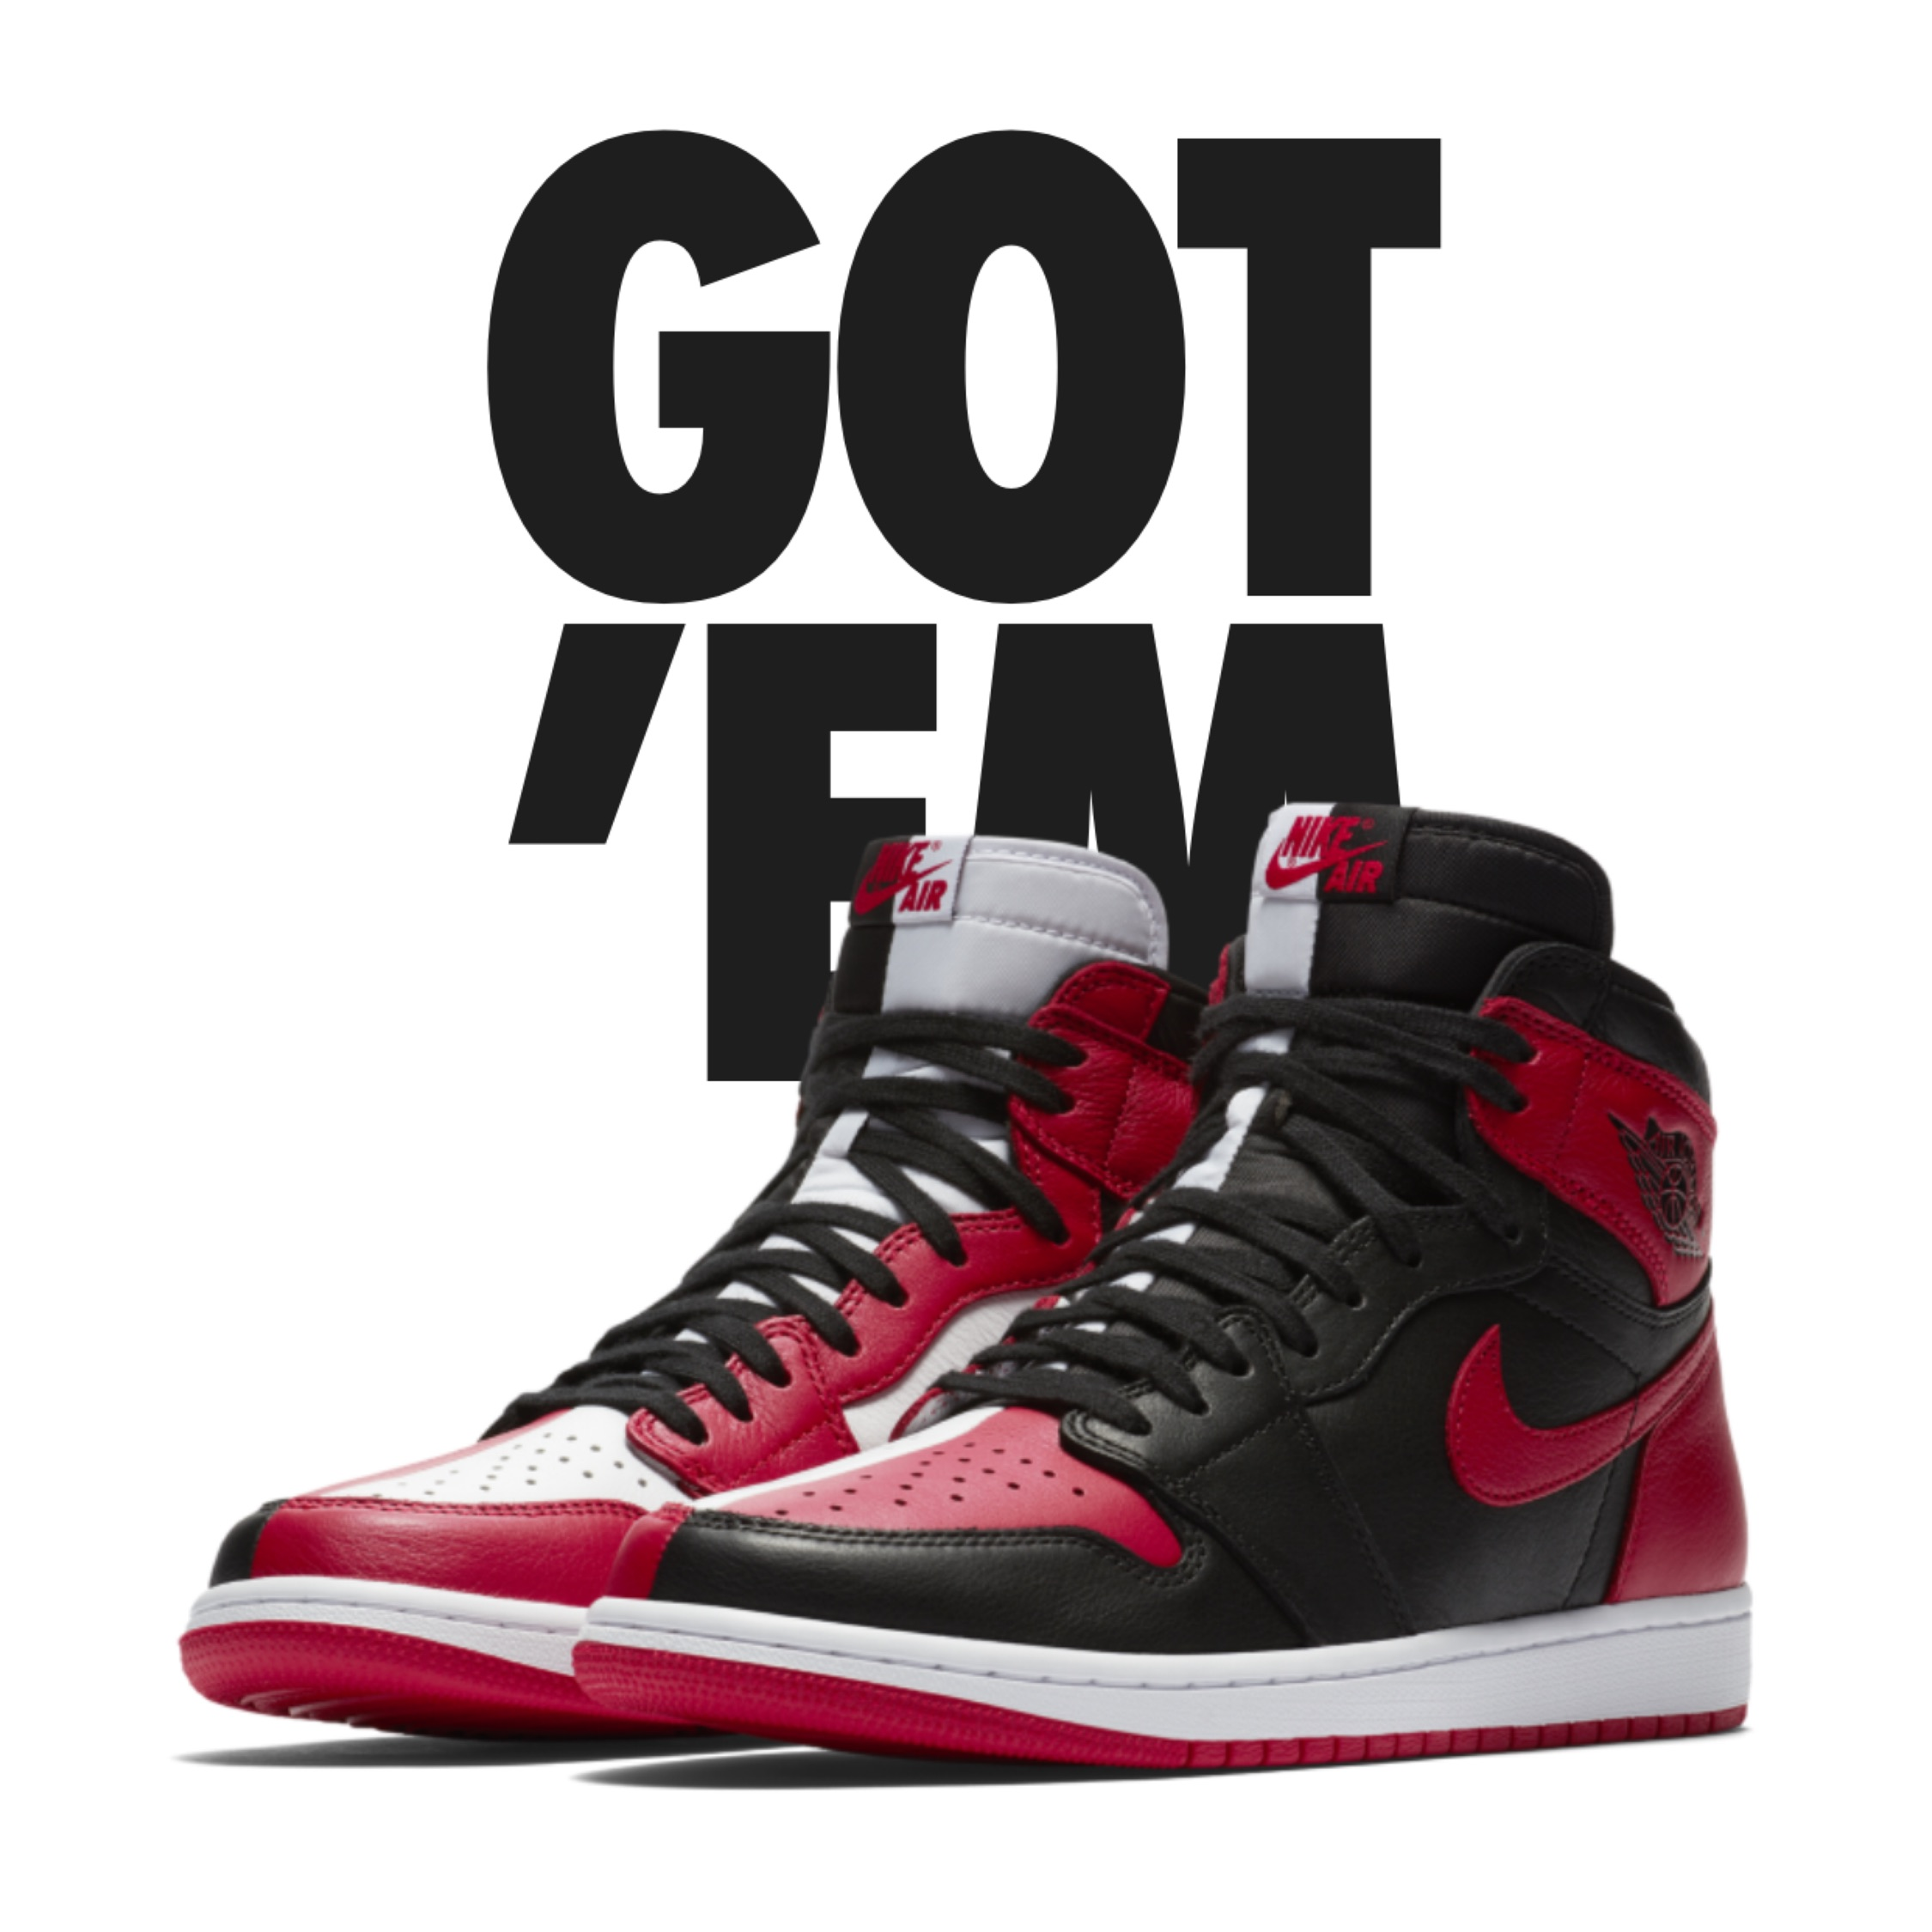 best loved d2cd3 6520f Homage To Home Jordan 1'S (Non-Numbered)